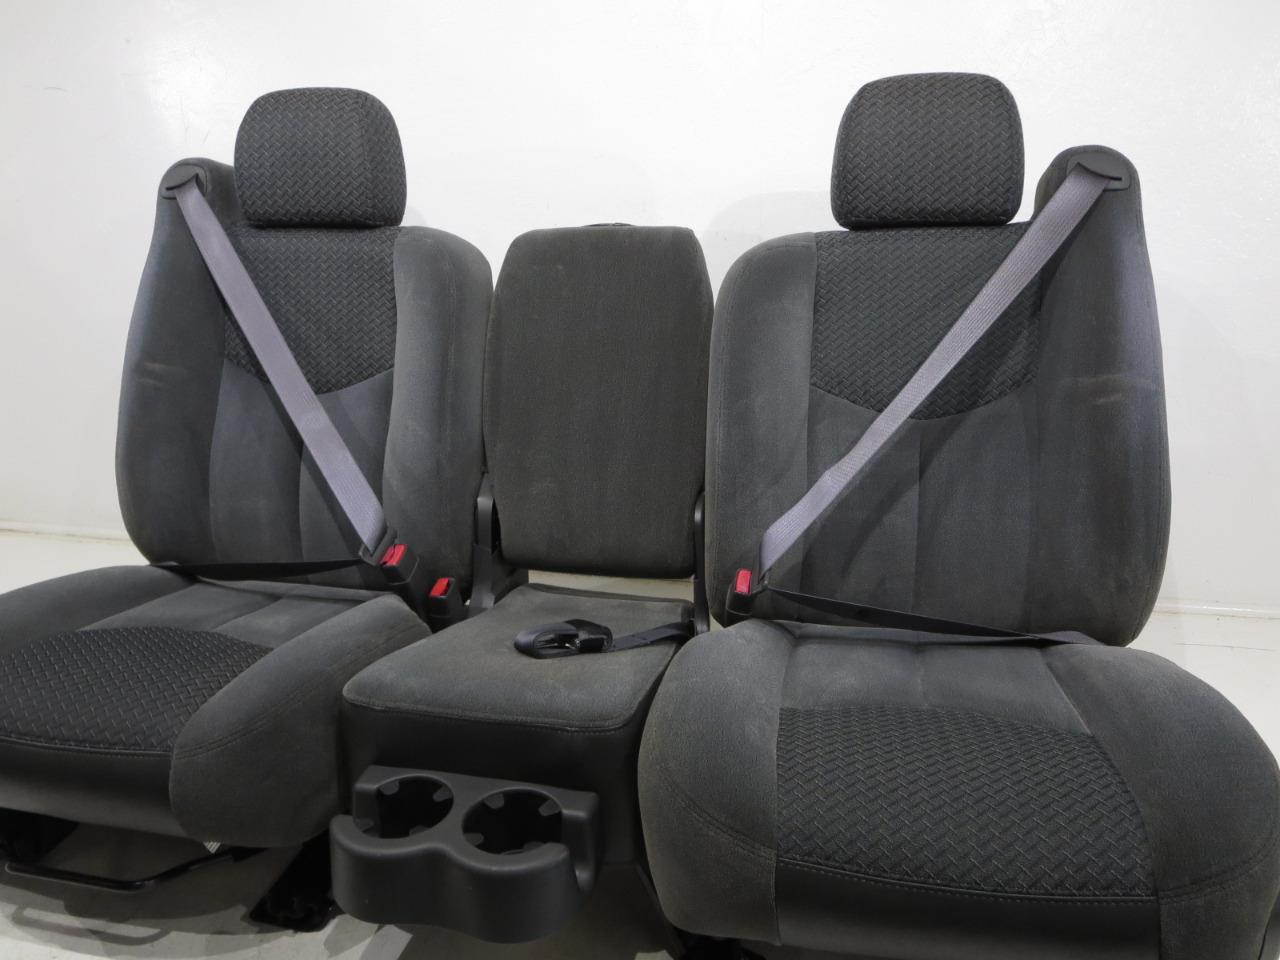 chevy silverado seats 2005 2004 avalanche cloth oem 2006 2003 gm replacement grey